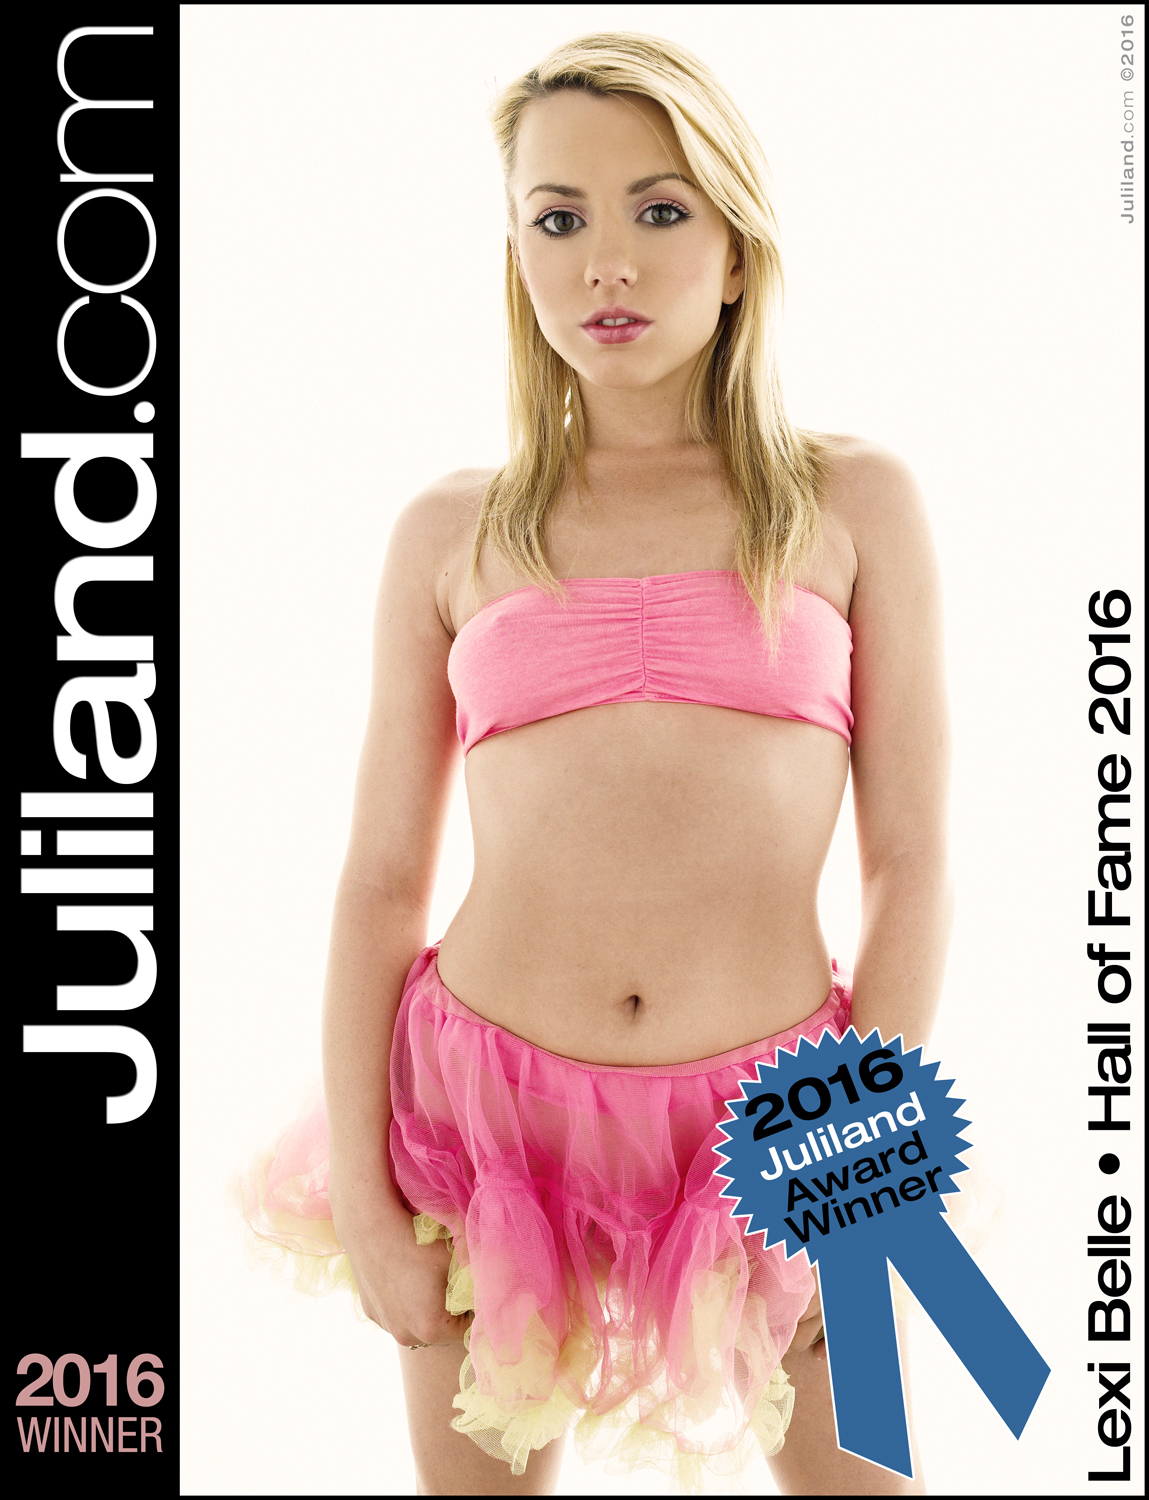 HALL OF FAME 2016: Lexi Belle